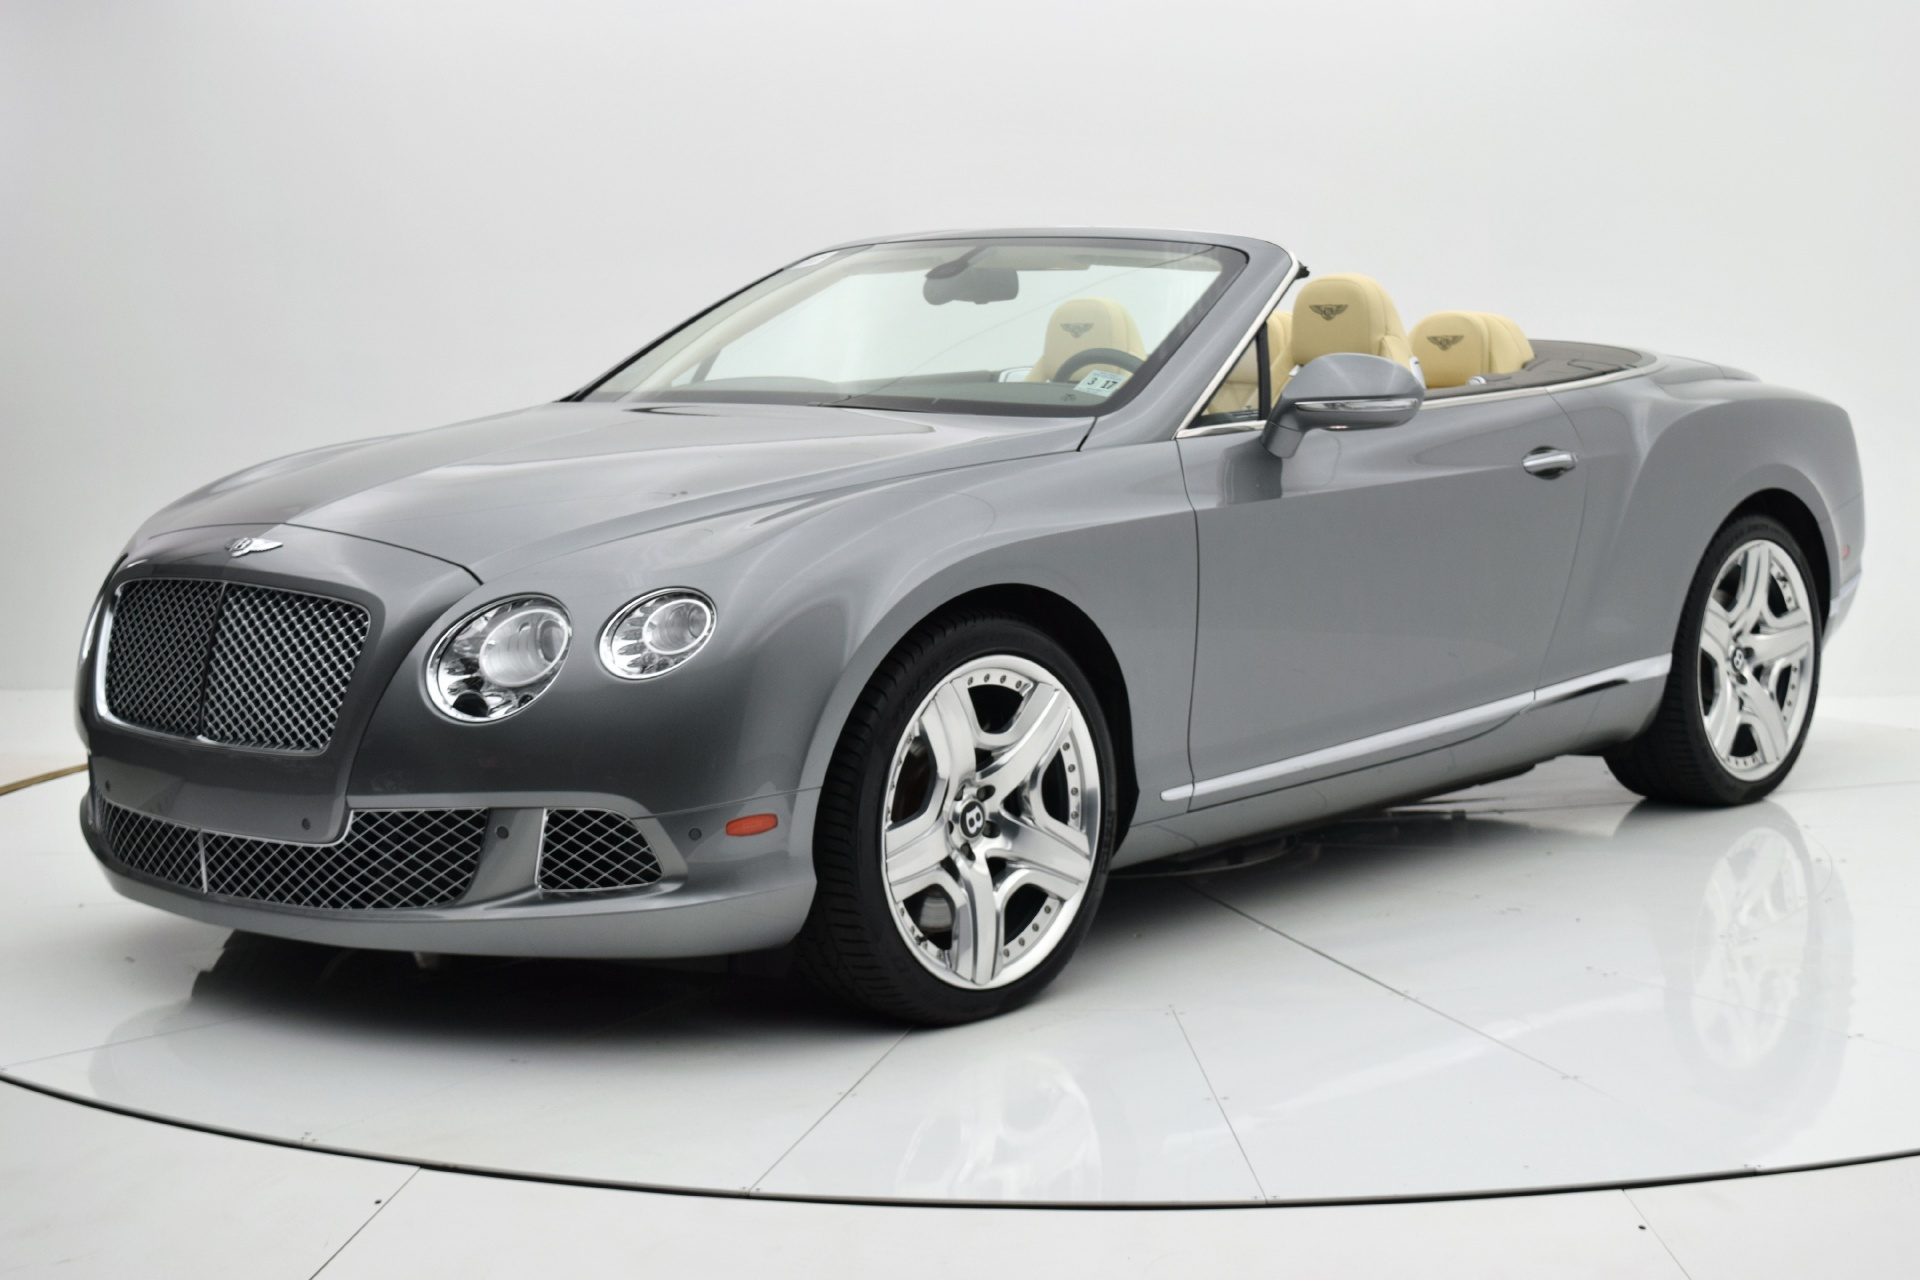 Used 2012 Bentley Continental GT W12 Convertible for sale $94,880 at F.C. Kerbeck Aston Martin in Palmyra NJ 08065 2